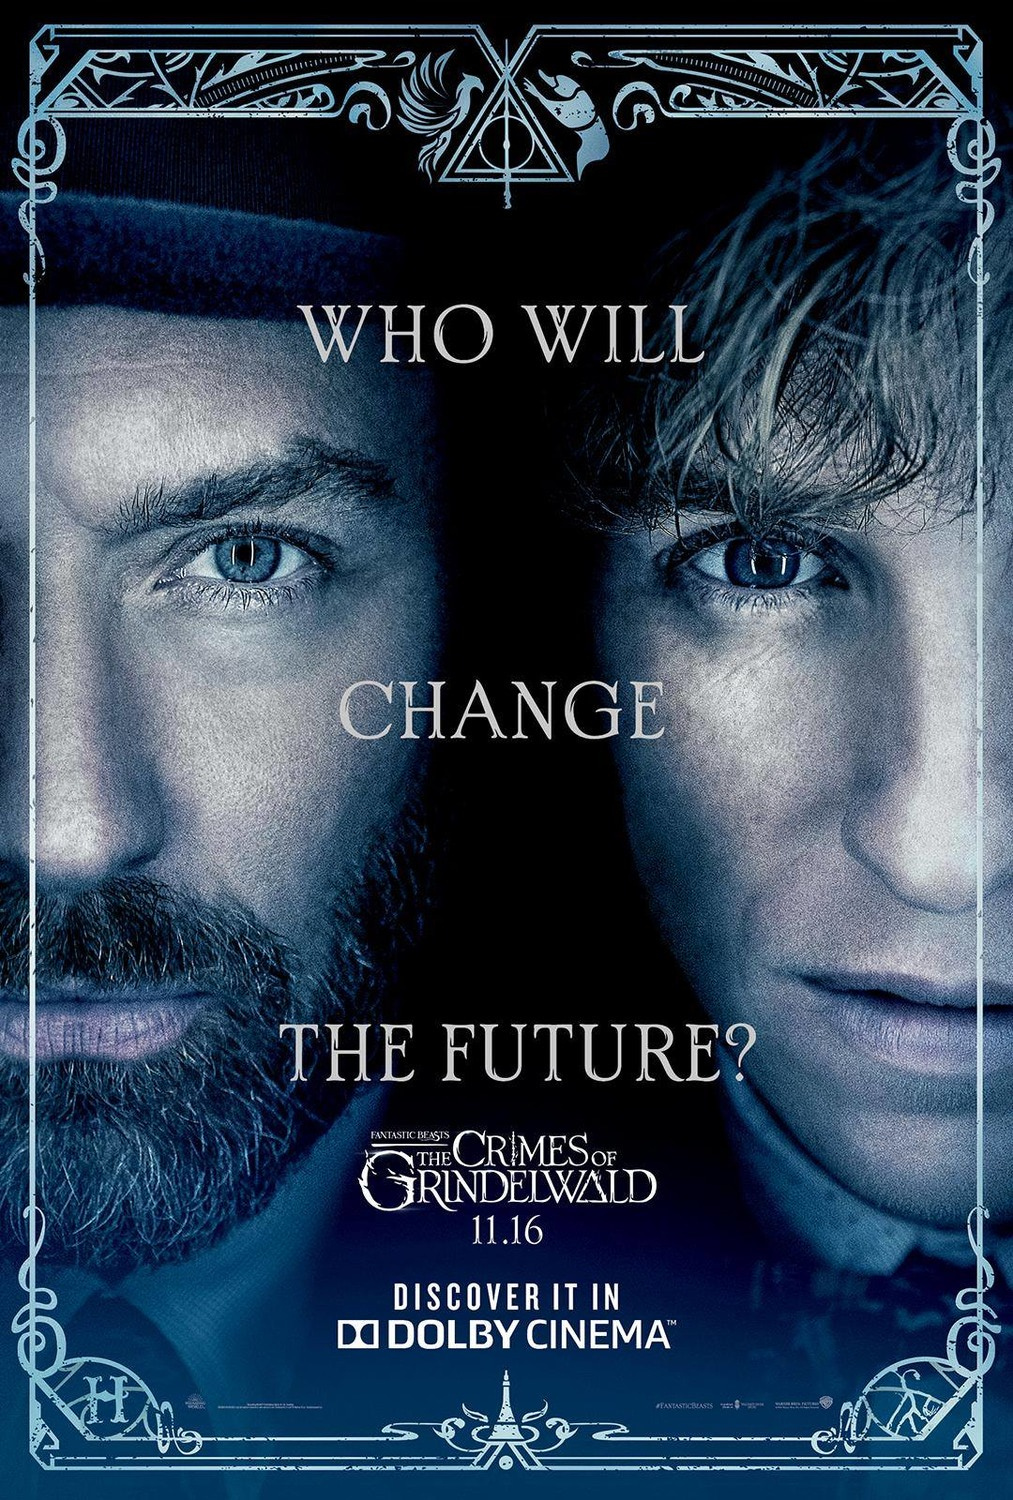 'Crimes of Grindelwald' Dumbledore and Newt poster